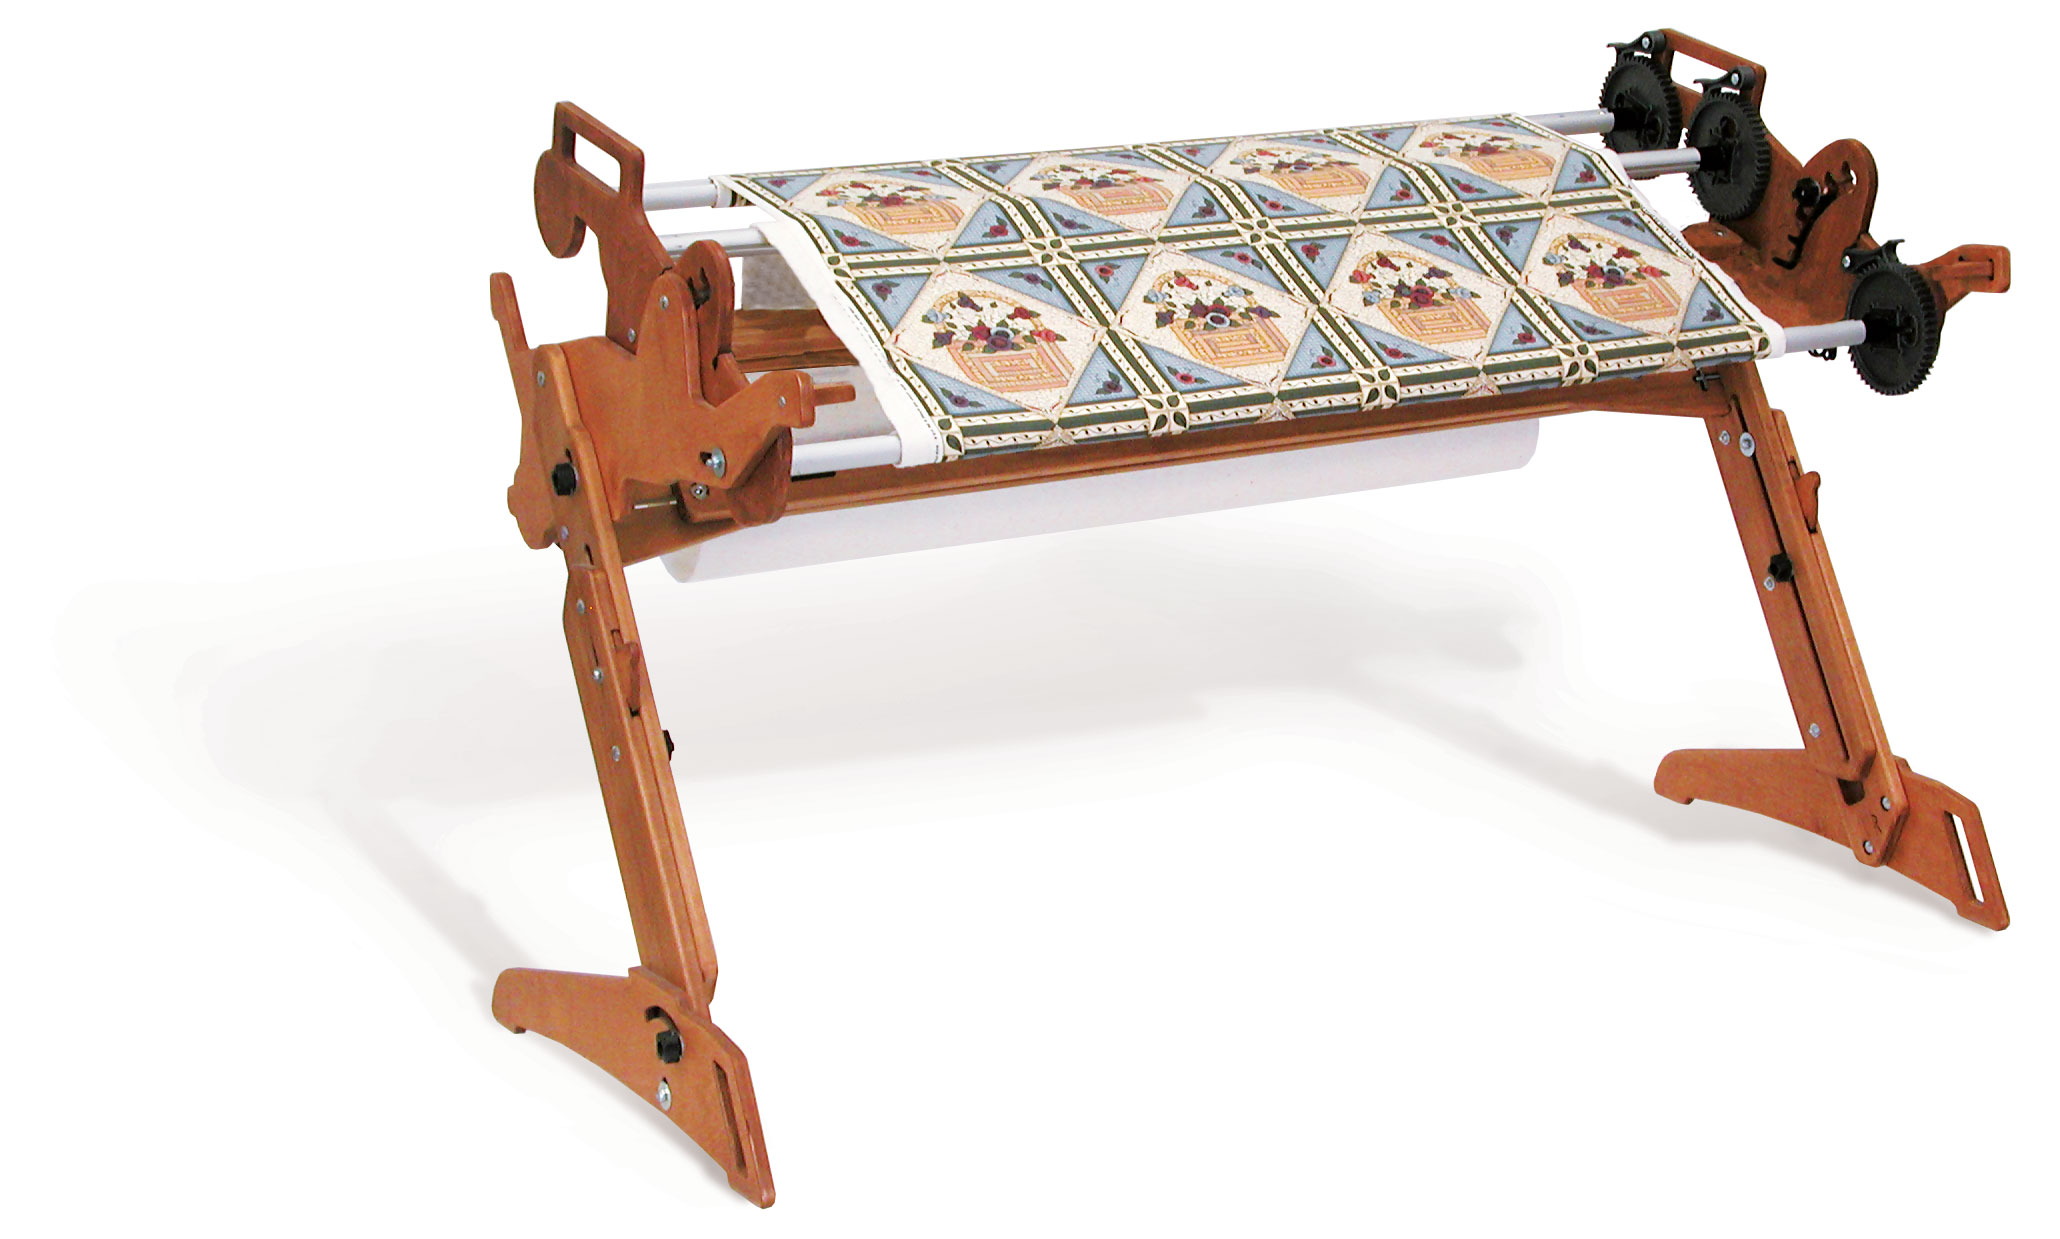 Grace Z44 Fabri Fast Hand Quilting Frame Adjustable To 4